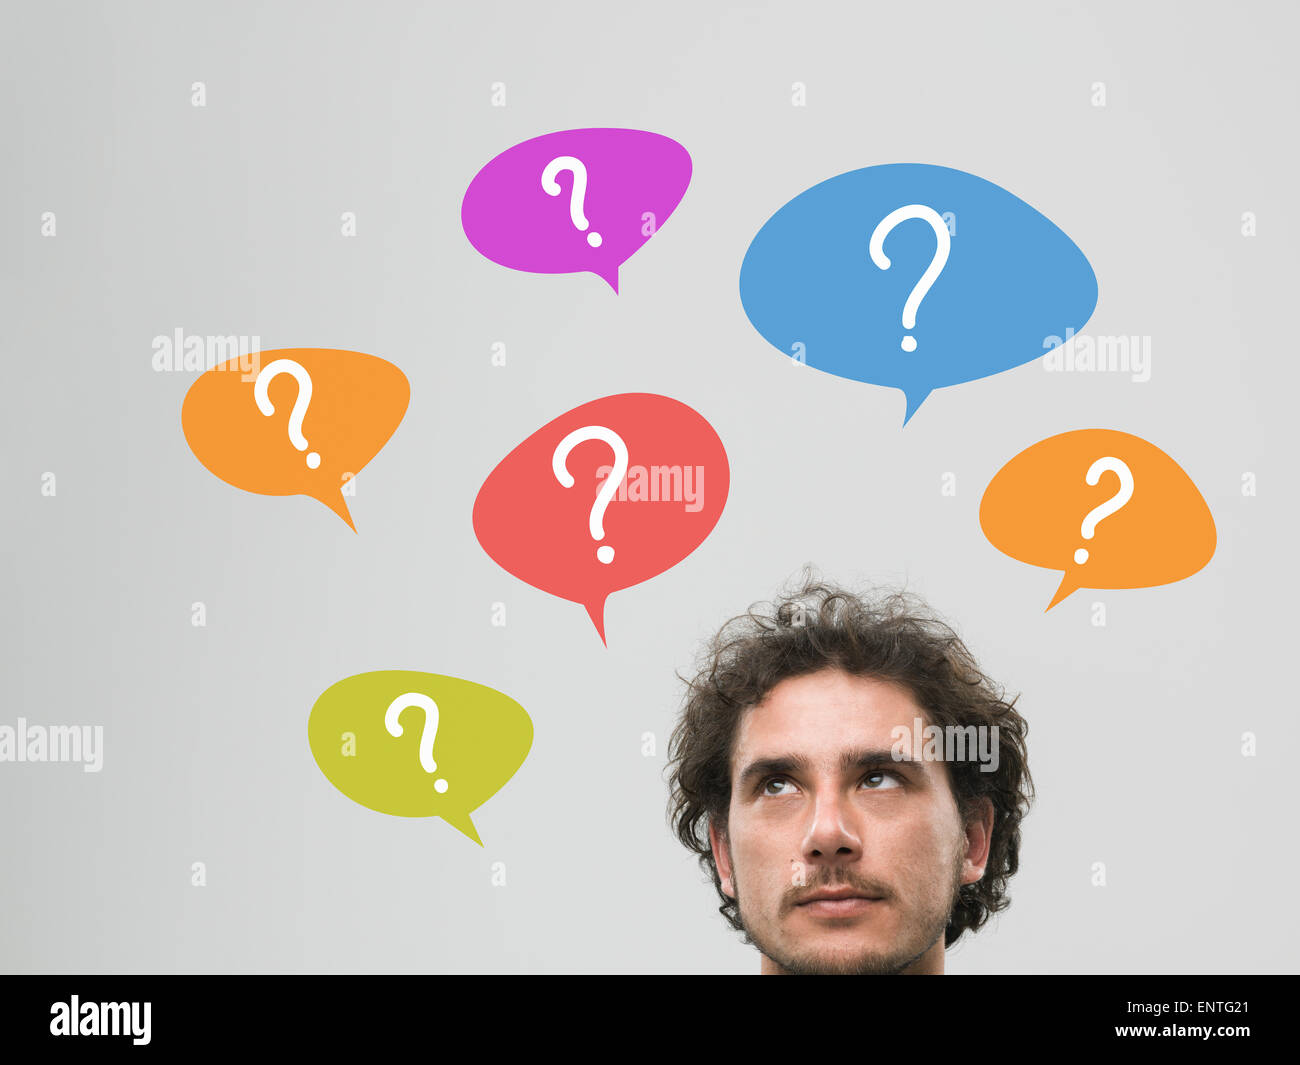 thinking man with many question marks in bubbles above his head, against grey background - Stock Image